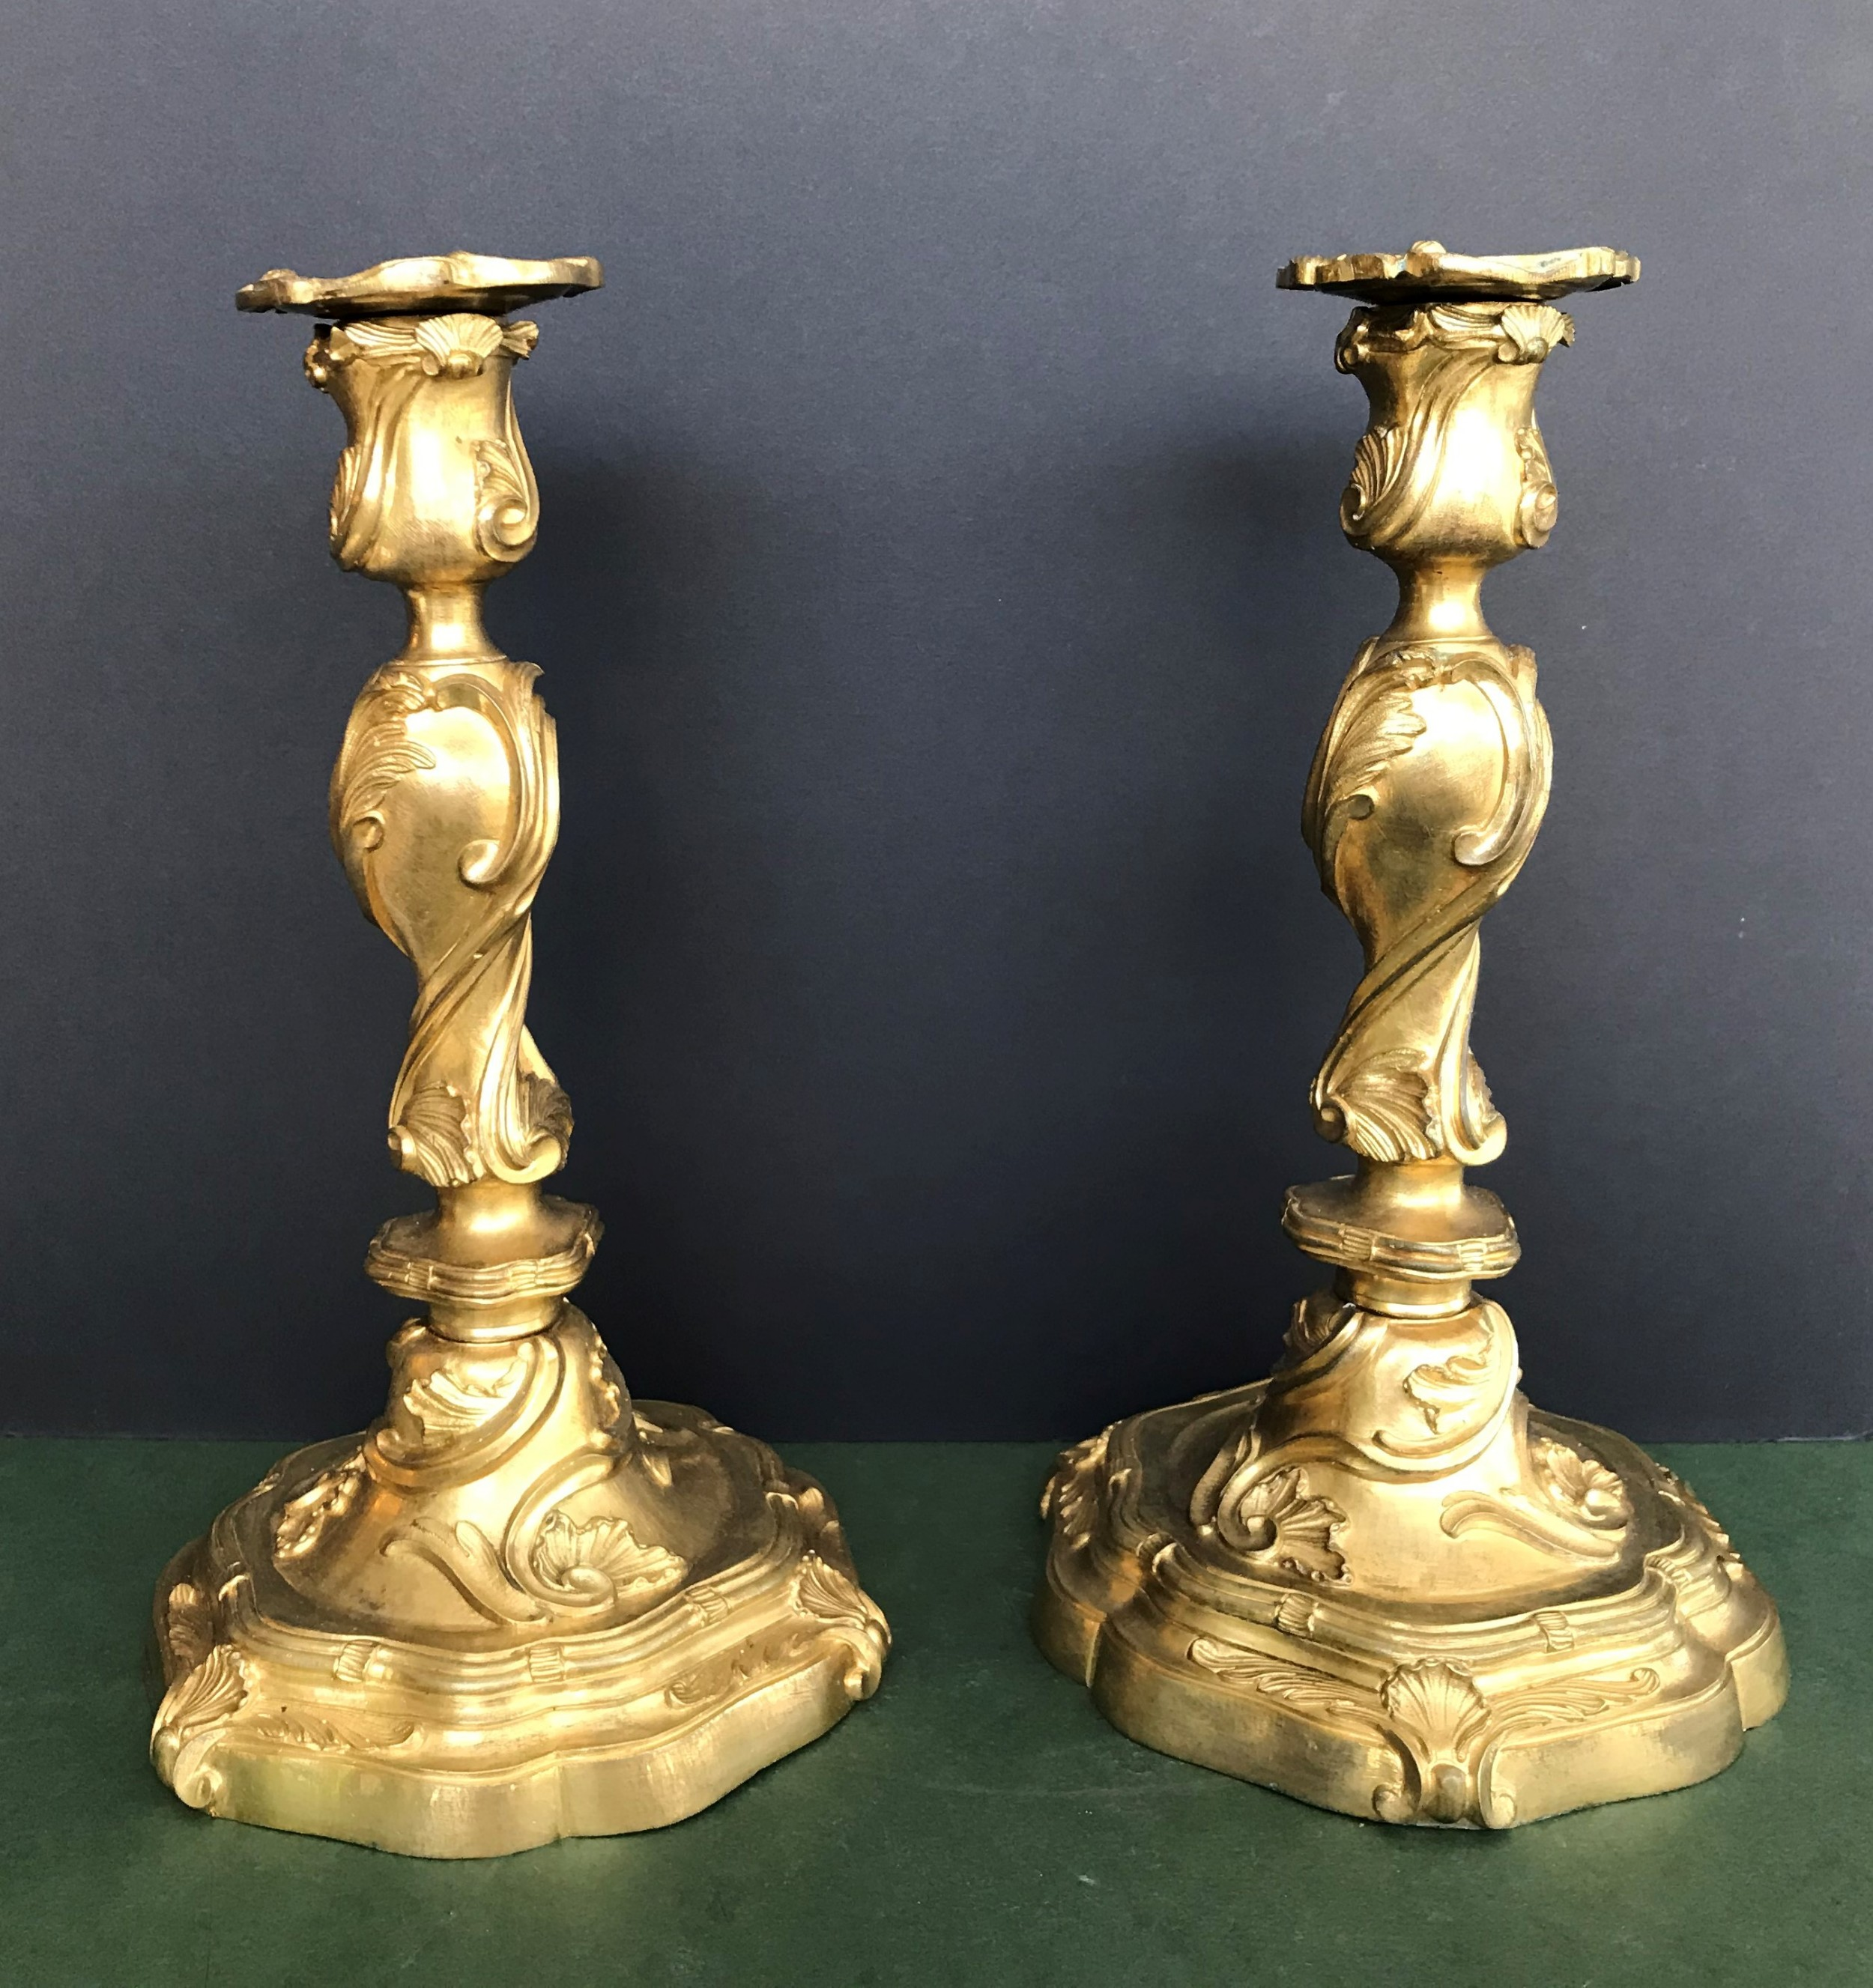 a good pair of late 19th century french ormolu candlesticks in the louis xvi manner